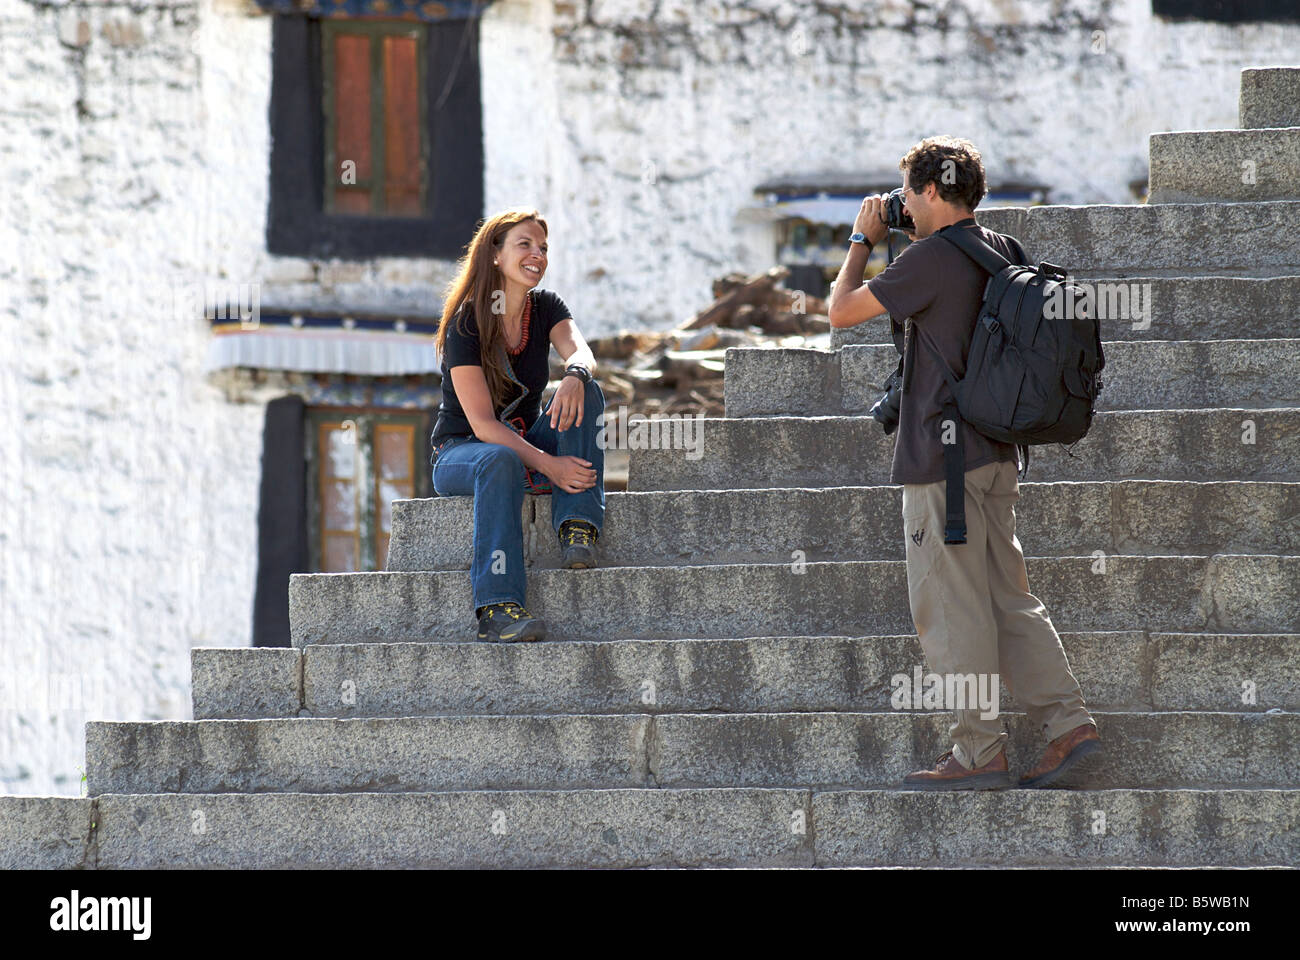 Photographer photographing a friend on the steps of Drepung Monastery, Lhasa, Tibet. Model Released - Stock Image